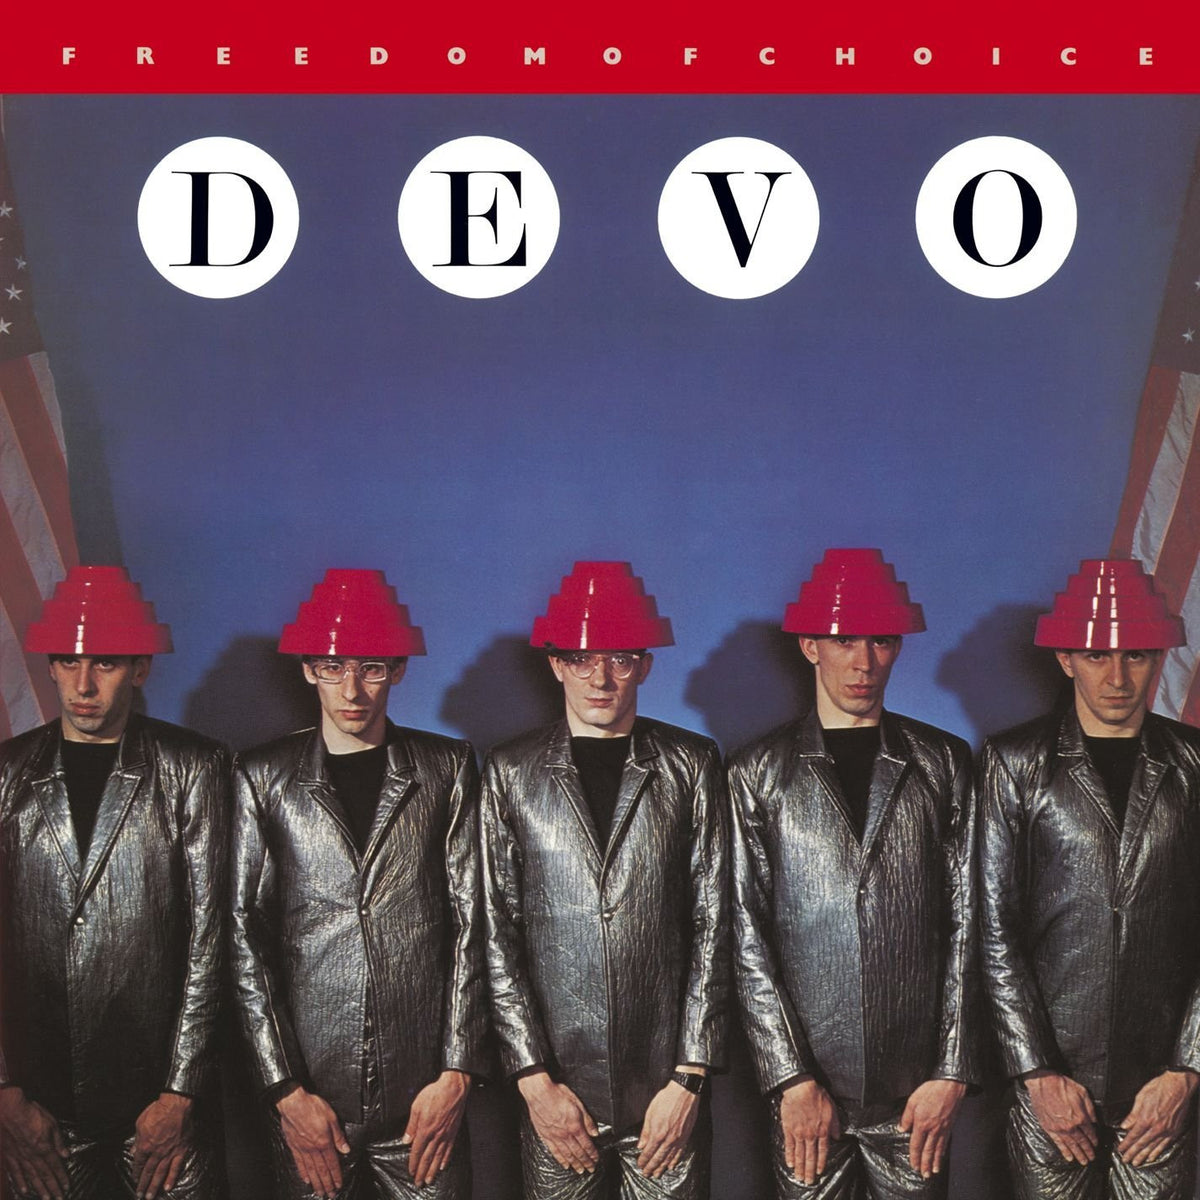 Devo - Freedom Of Choice (Used)